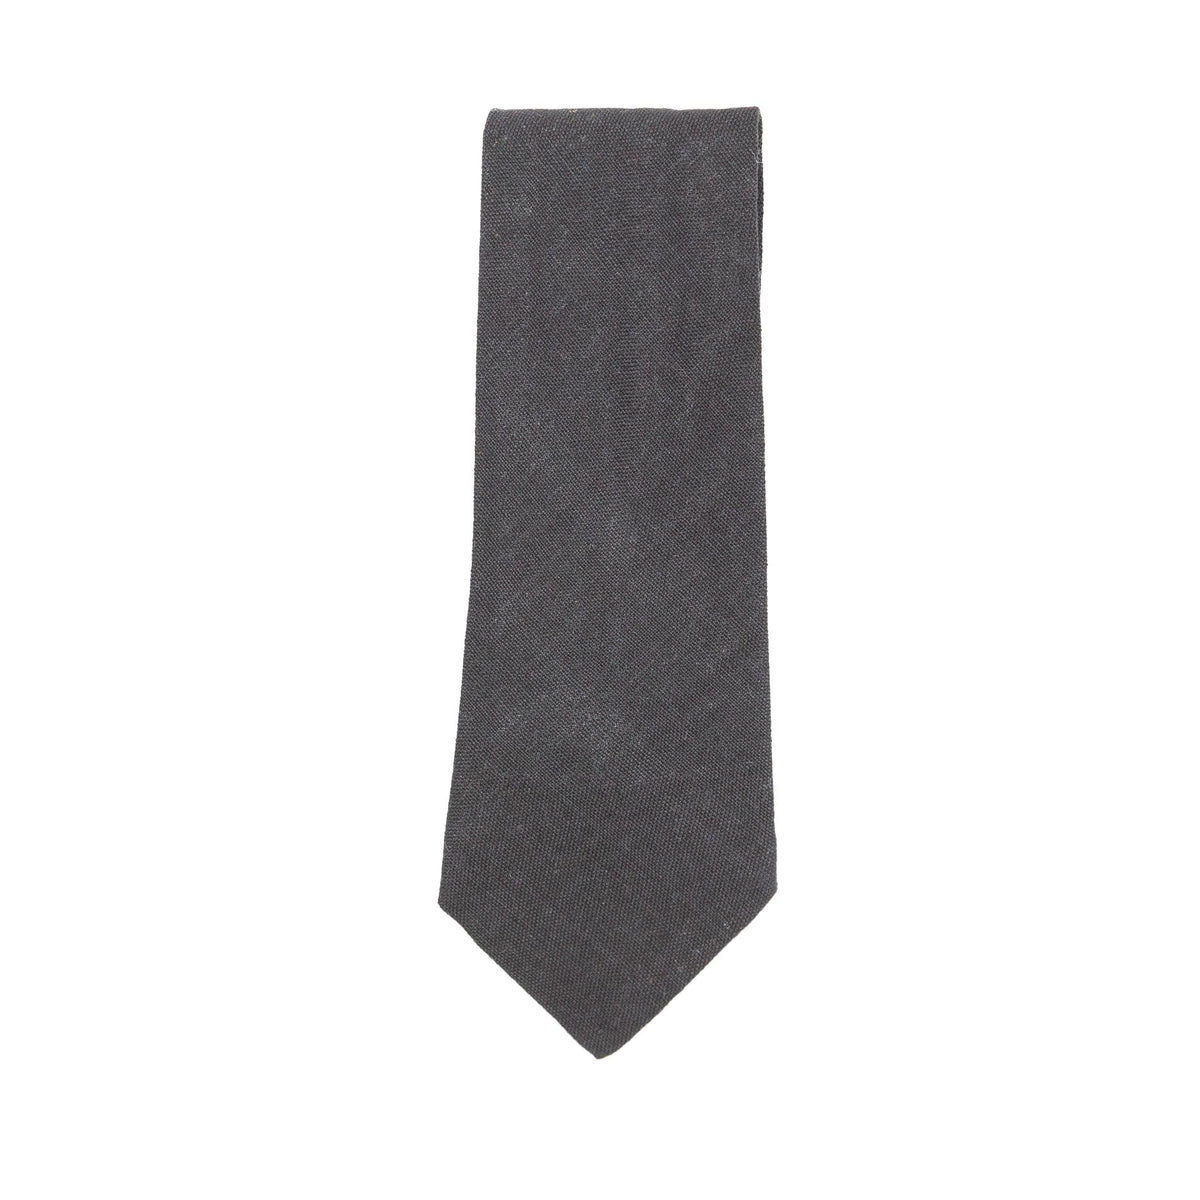 Fair Trade Guatemalan Cotton Tie Black